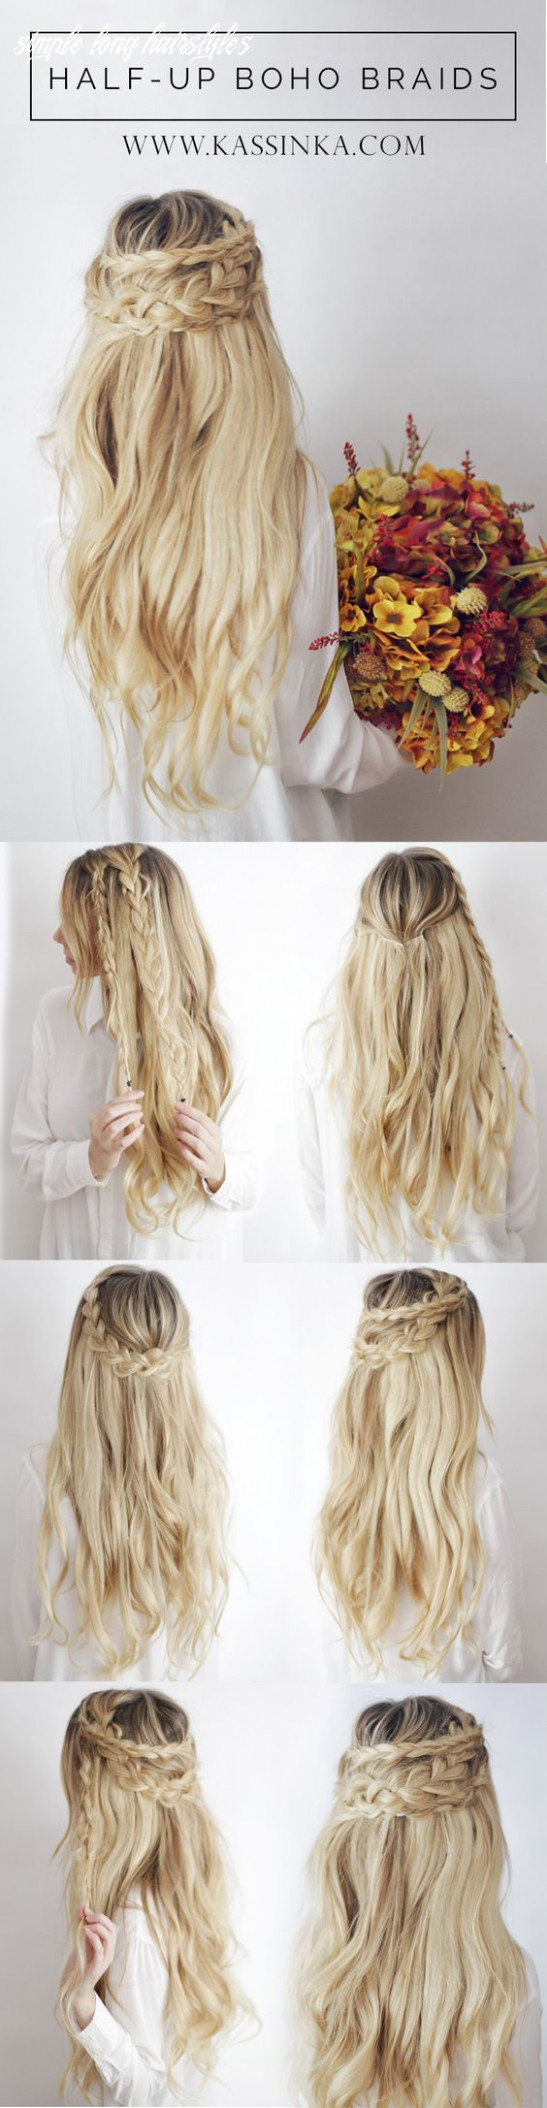 11 amazing long hairstyles & cuts 11 easy layered long hairstyles simple long hairstyles